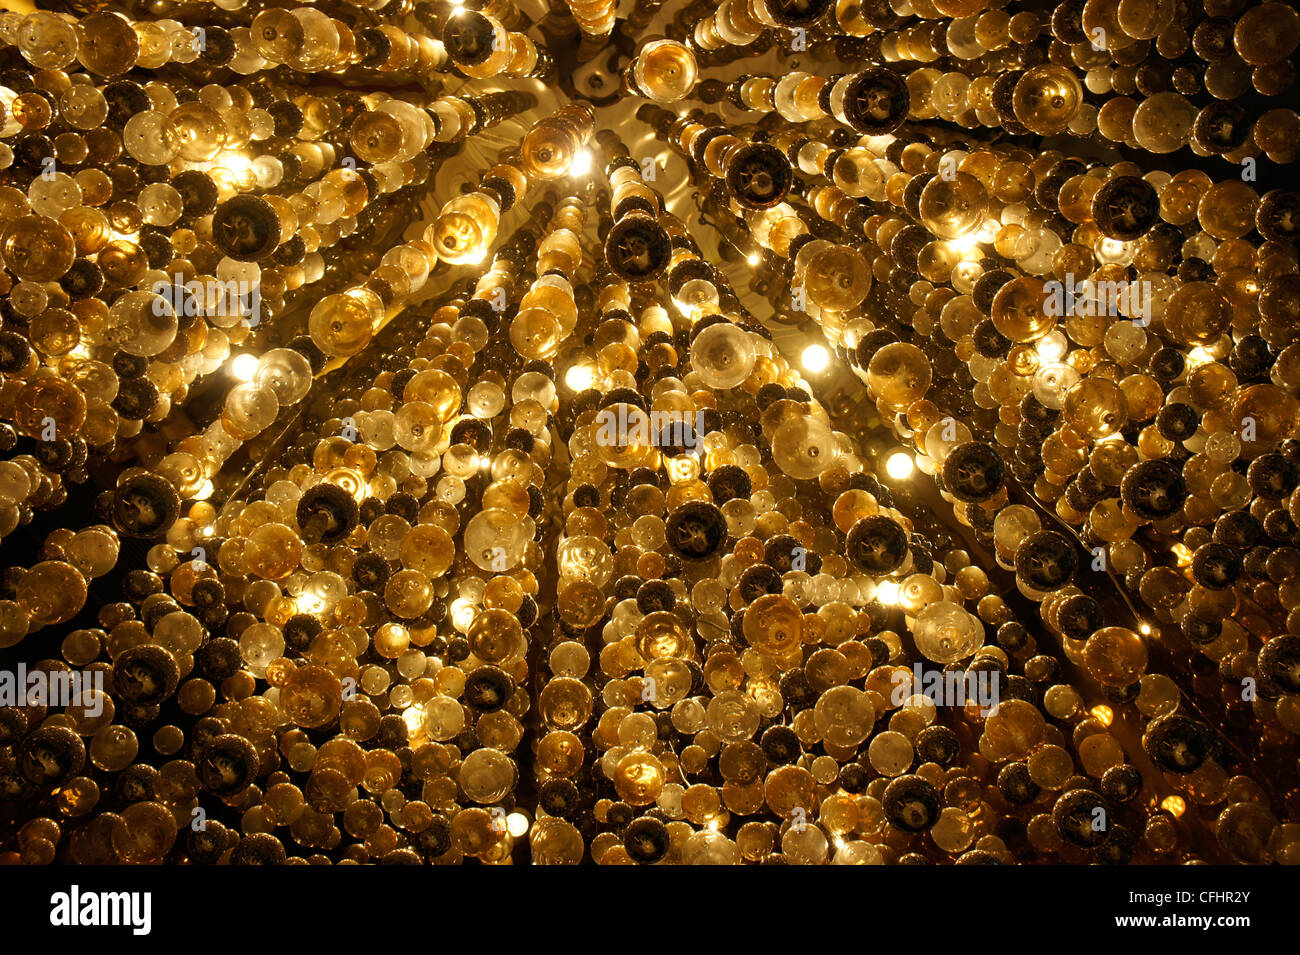 abstract lights on golden colored background - Stock Image